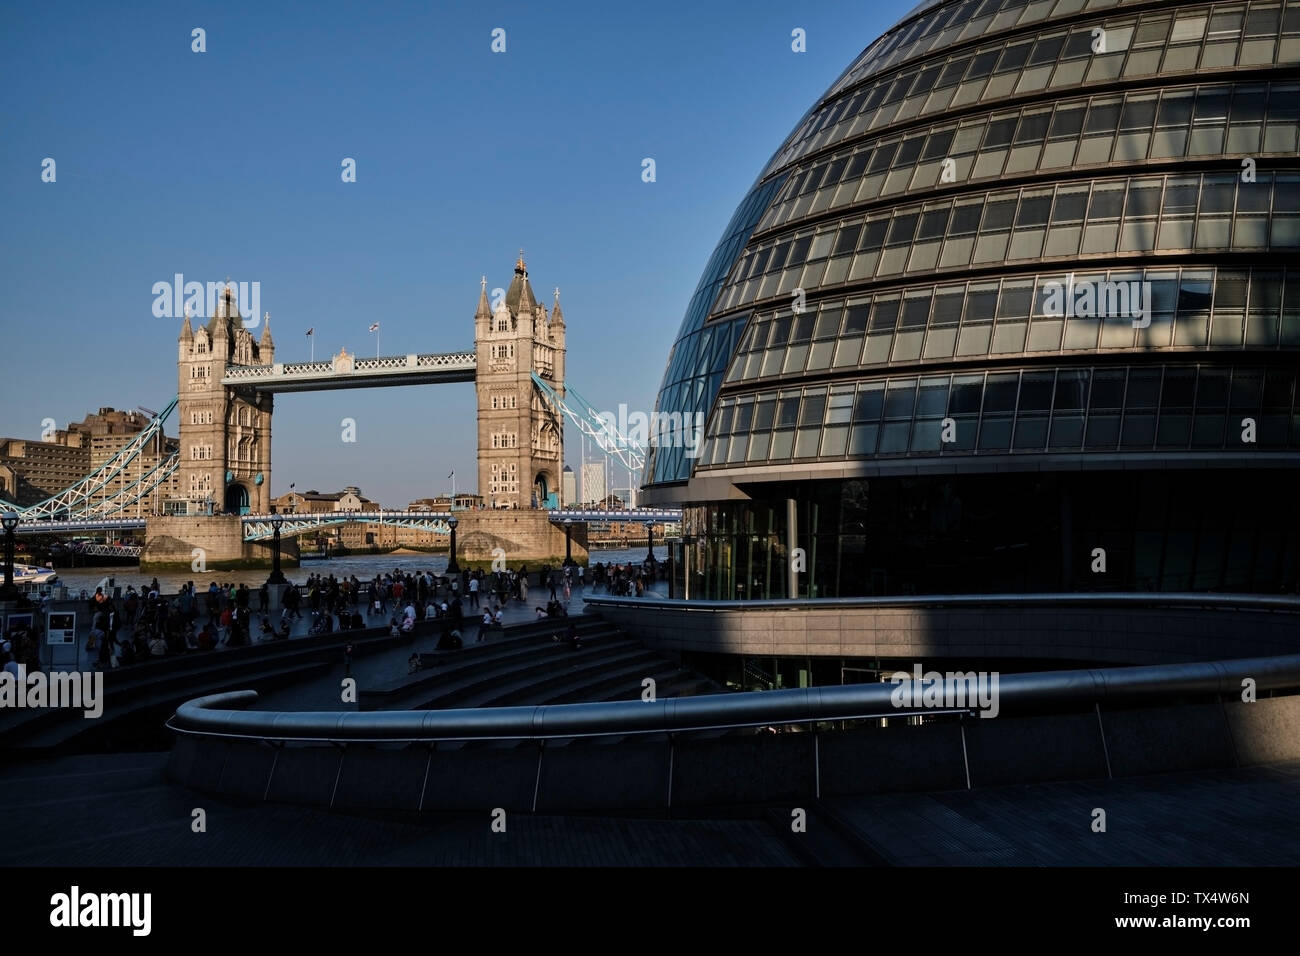 UK, London, River Thames, City Hall and Tower Bridge - Stock Image